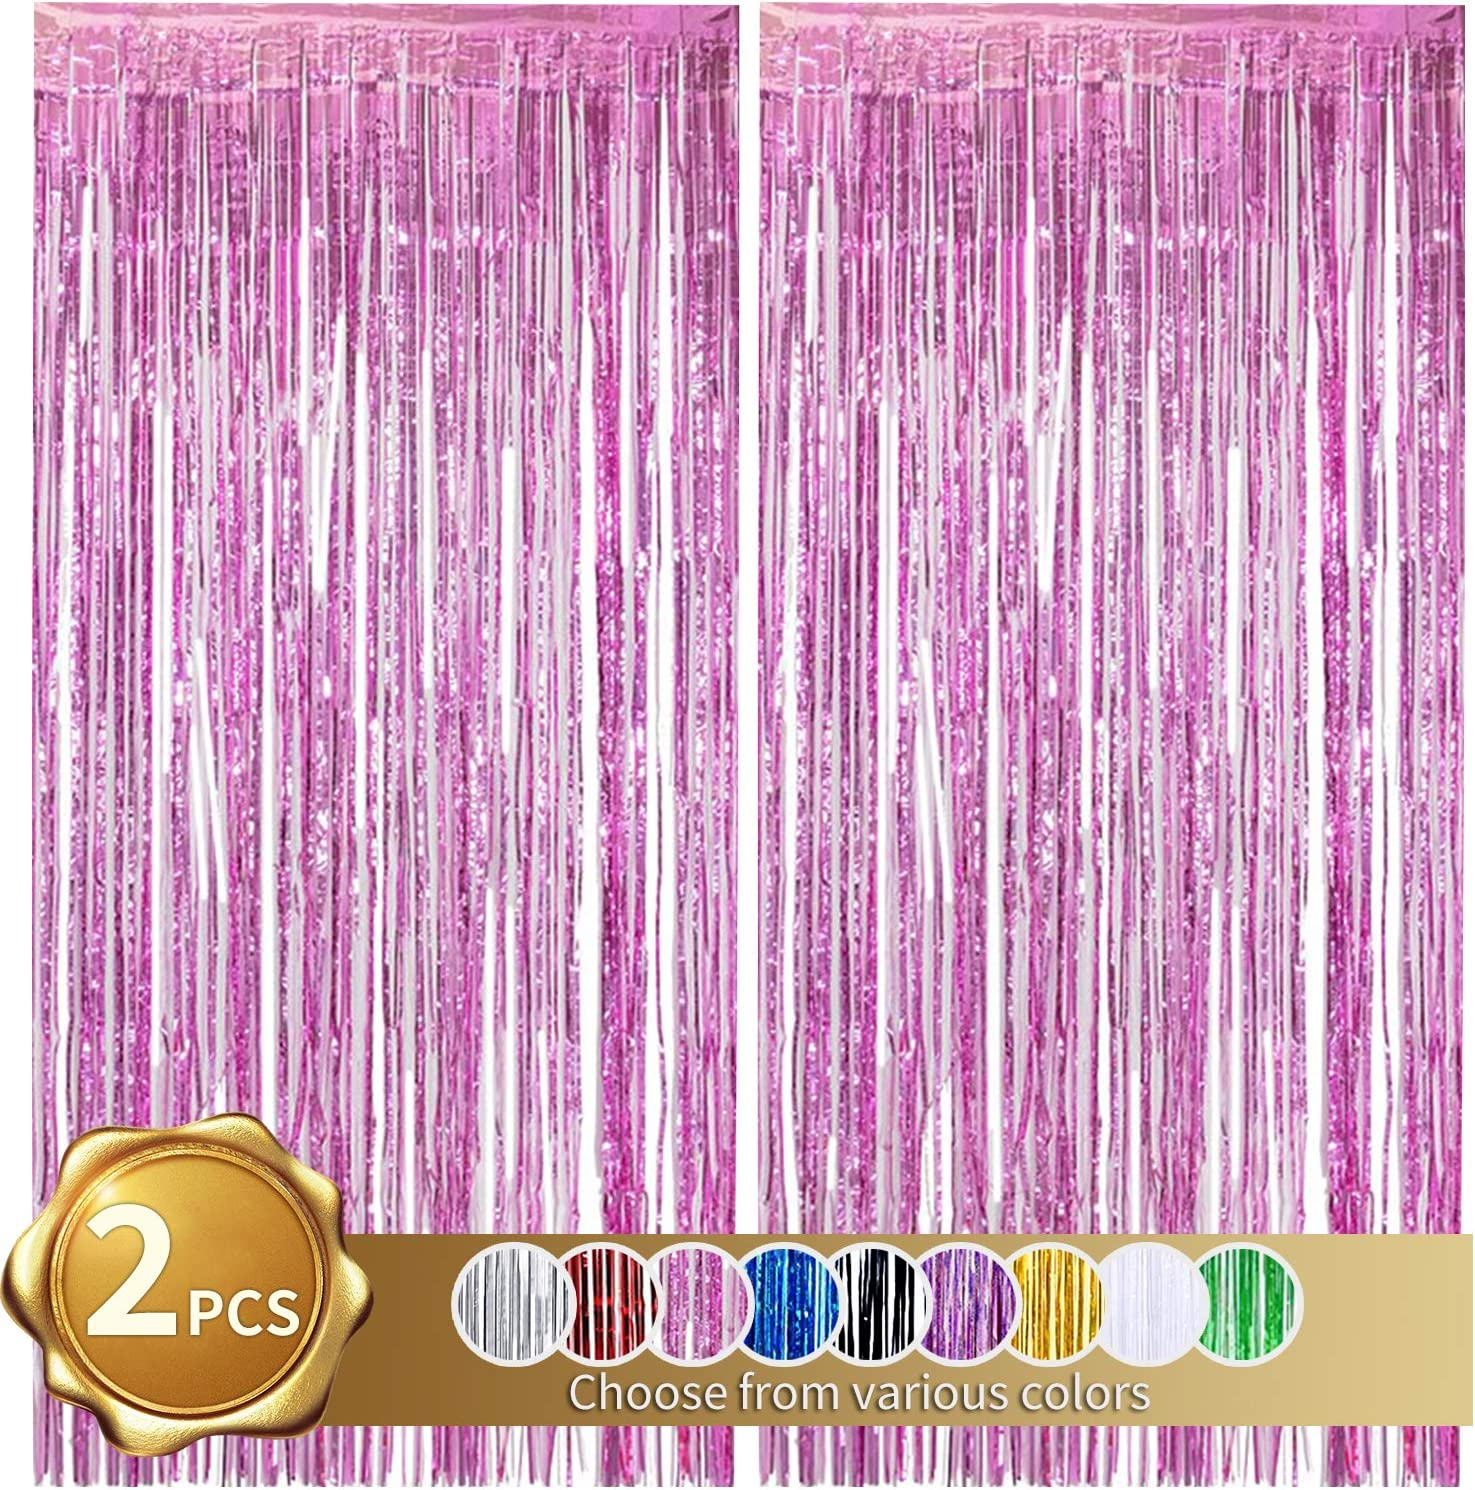 BEISHIDA 2 Pack Foil Fringe Curtain,Pink Tinsel Metallic Curtains Photo Backdrop for Wedding Engagement Bridal Shower Birthday Bachelorette Party Stage Decor(3.28 ft x 6.56 ft)